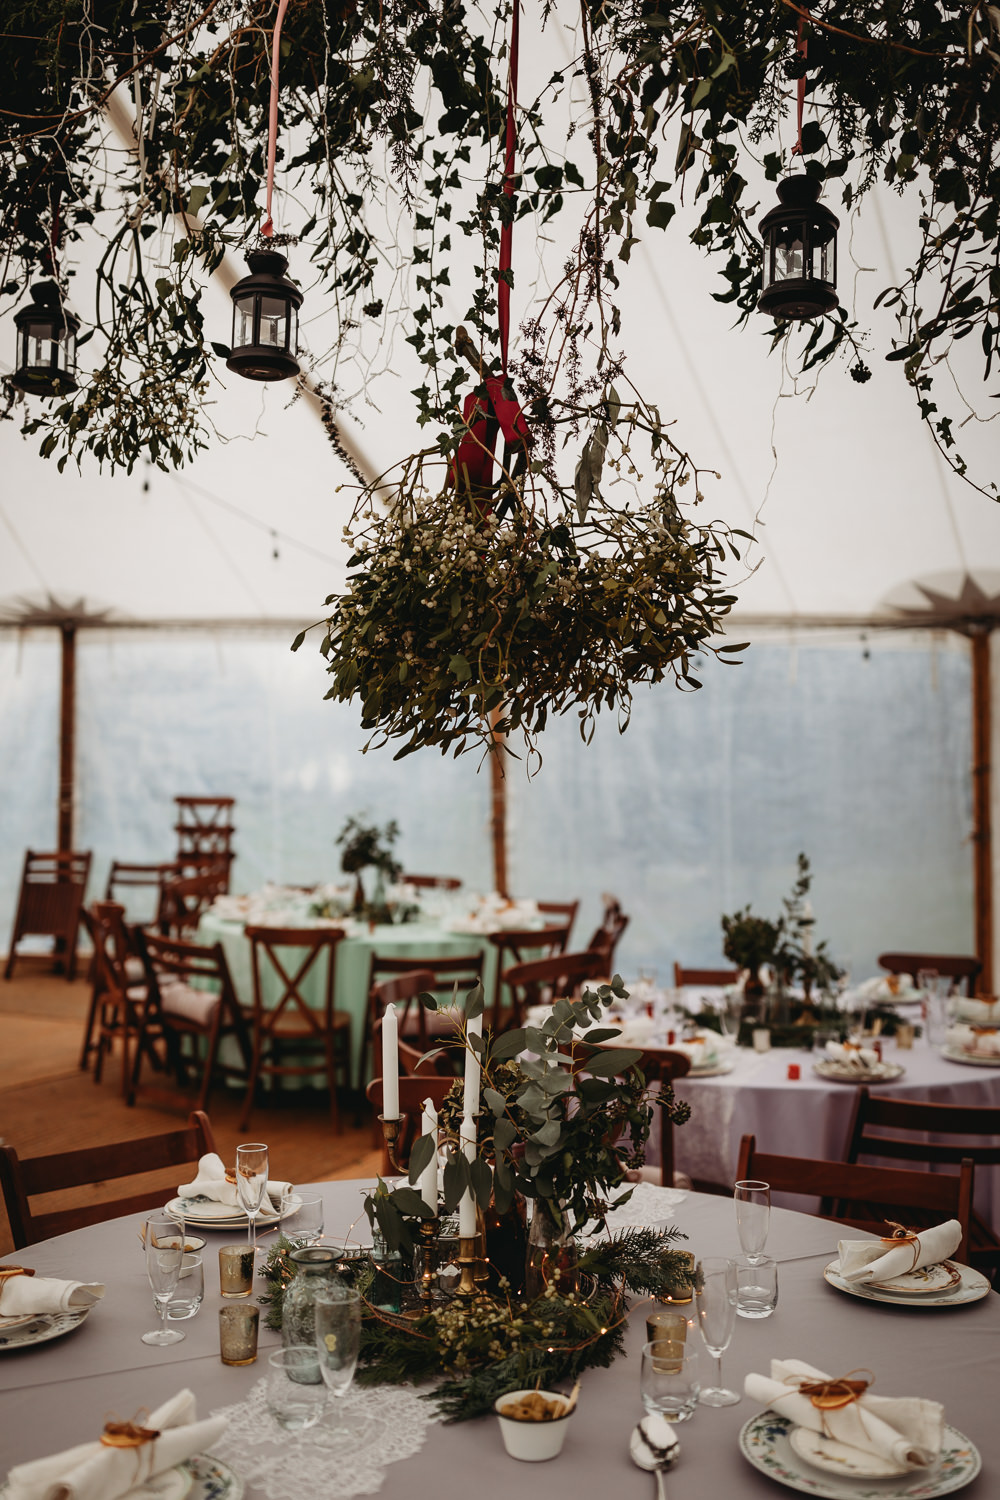 Sailcloth Tent Decoration Decor Hanging Foliage Lanterns Greenery Suspended Mistletoe Christmas Marquee Wedding Thyme Lane Photography